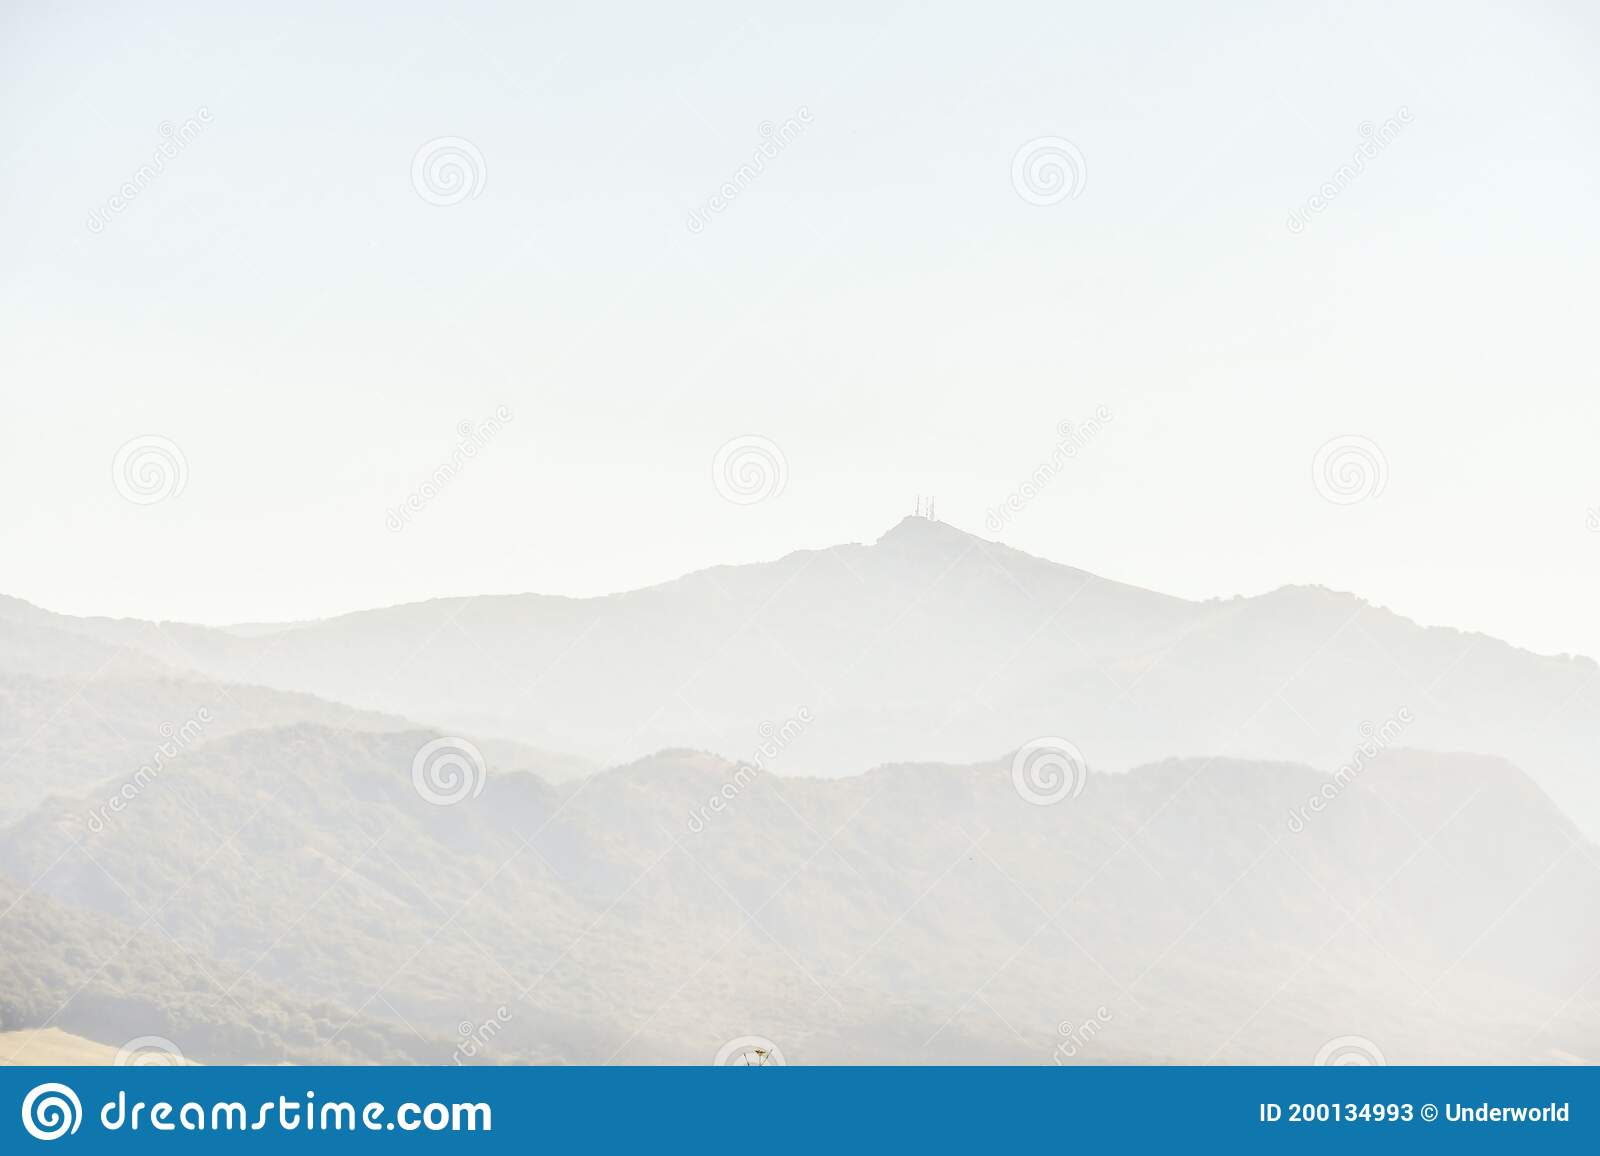 Mountains In Winter Photo As A Background In Navarra Aragon Zaragoza Spain Europe Roncisvalle Camino De Santiago City Stock Image Image Of Roncisvalle Scenery 200134993